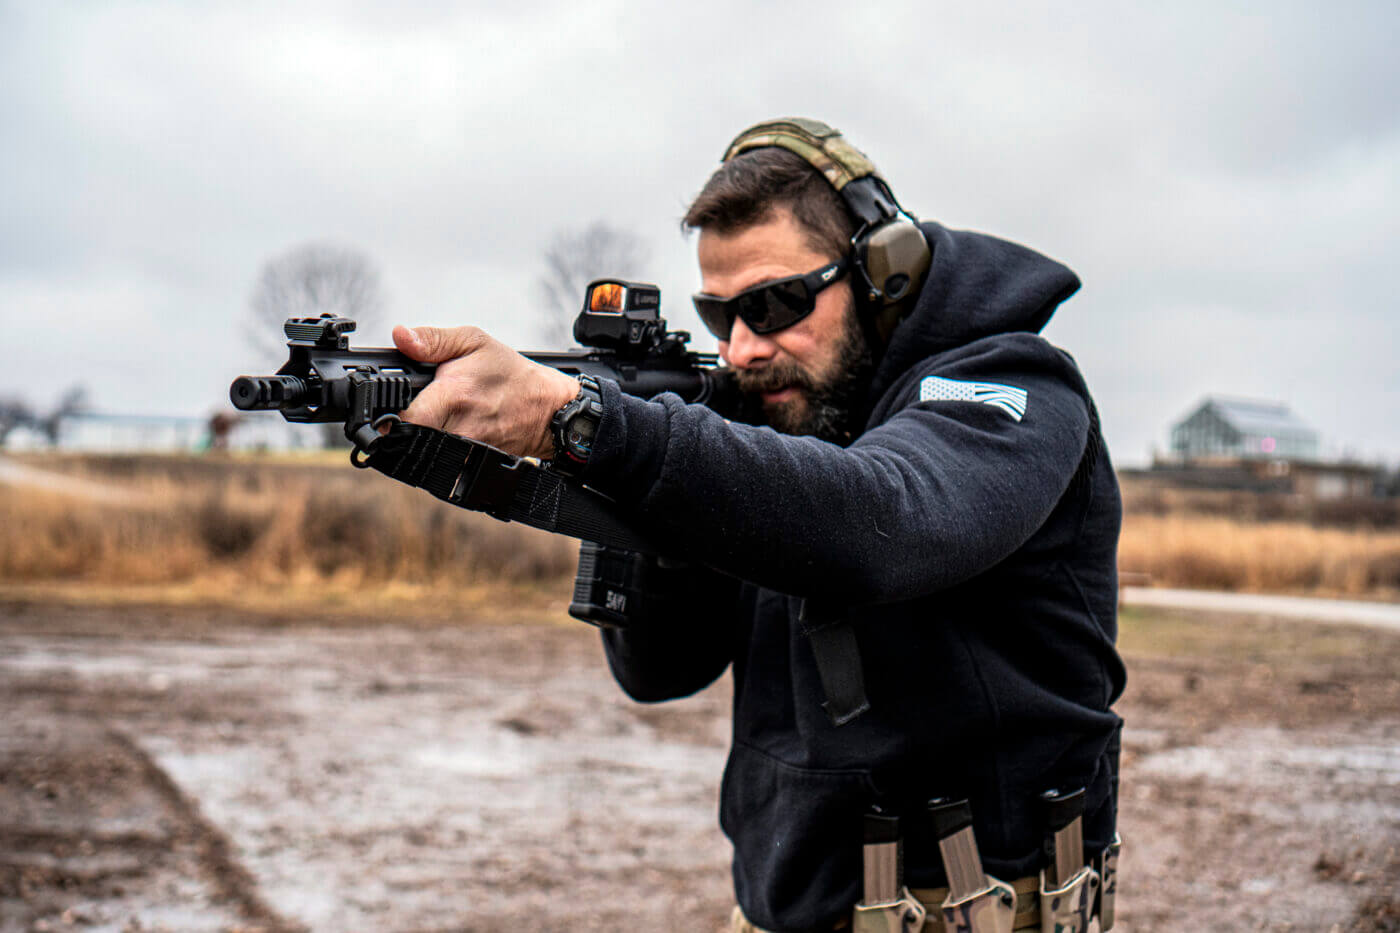 Armageddon Gear Heavy Carbine Sling being used by a man shooting a rifle